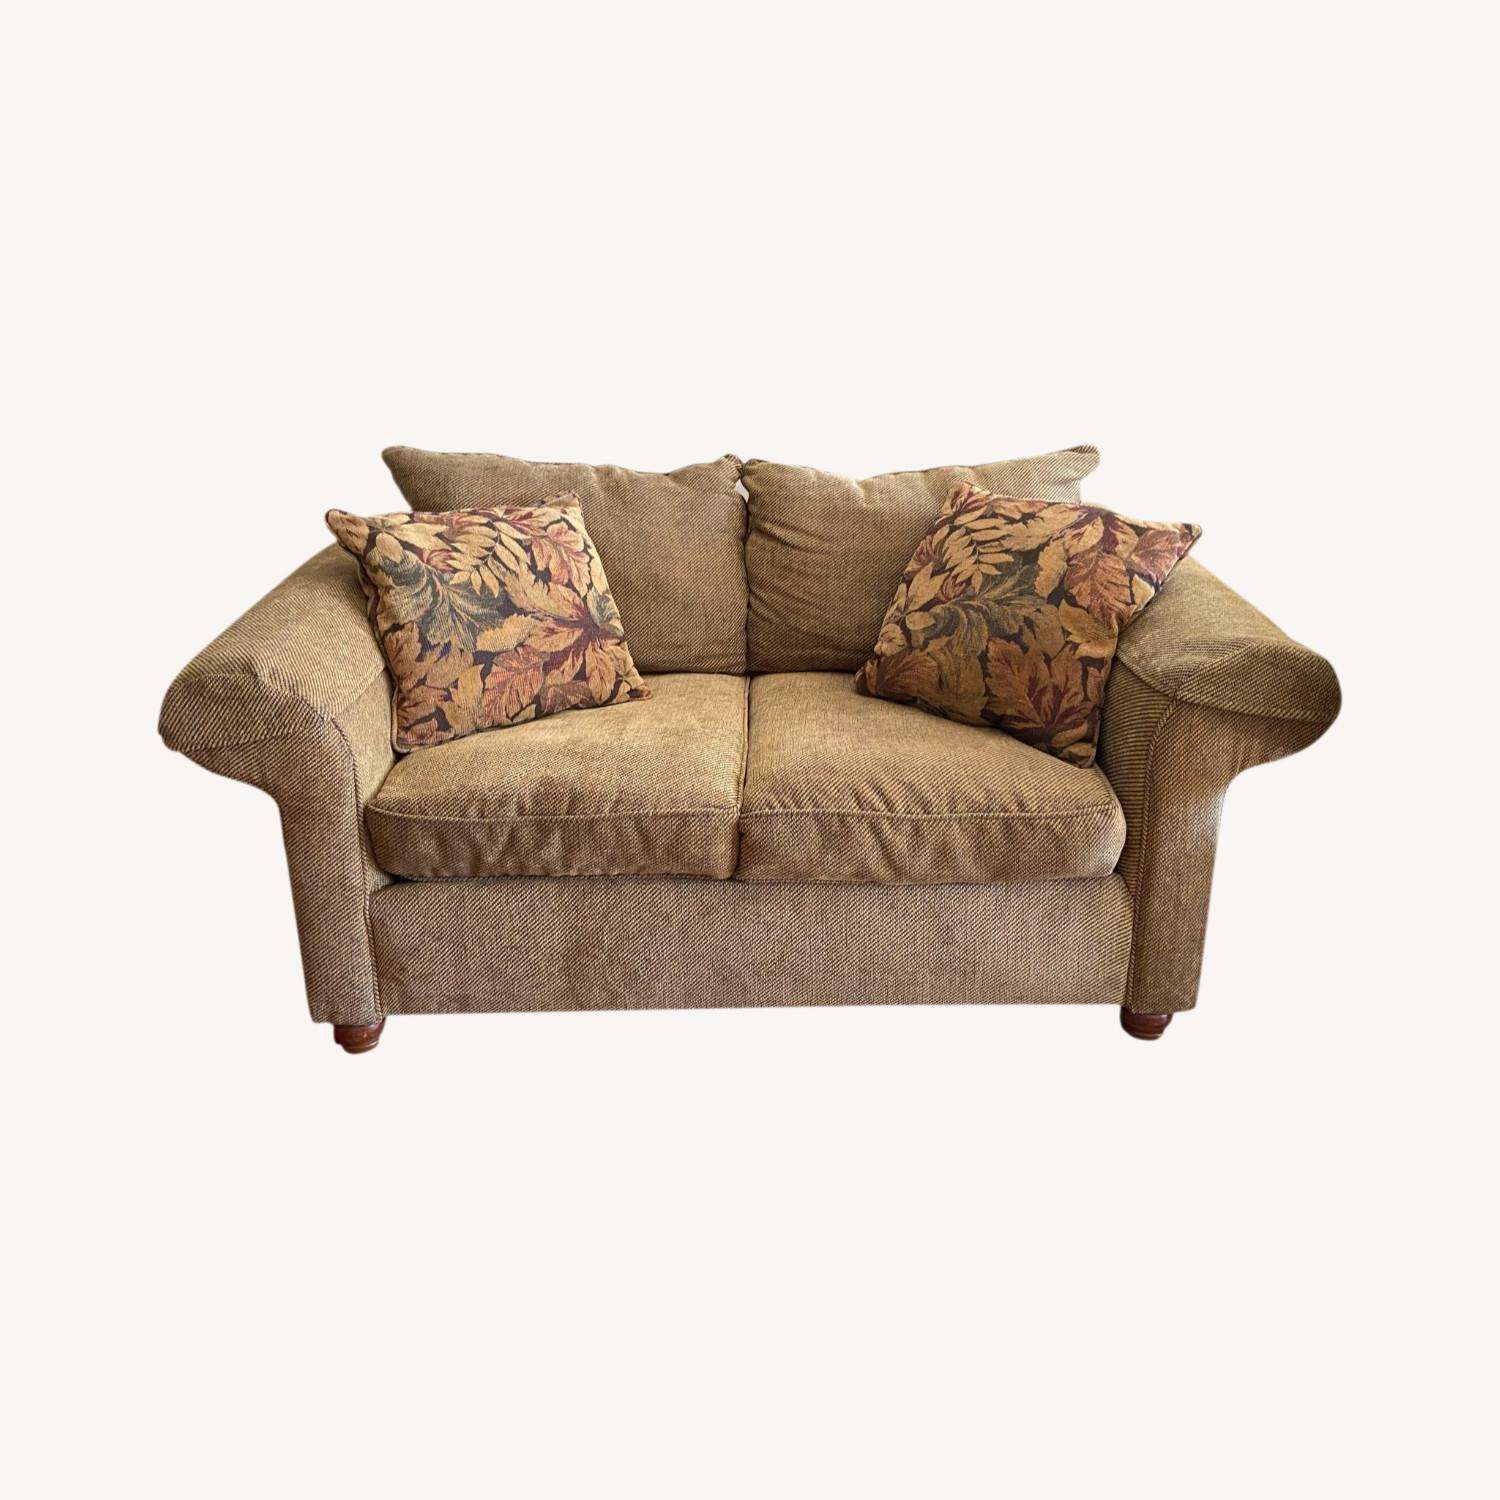 Regency Manor Two-Seat Sofa - image-0